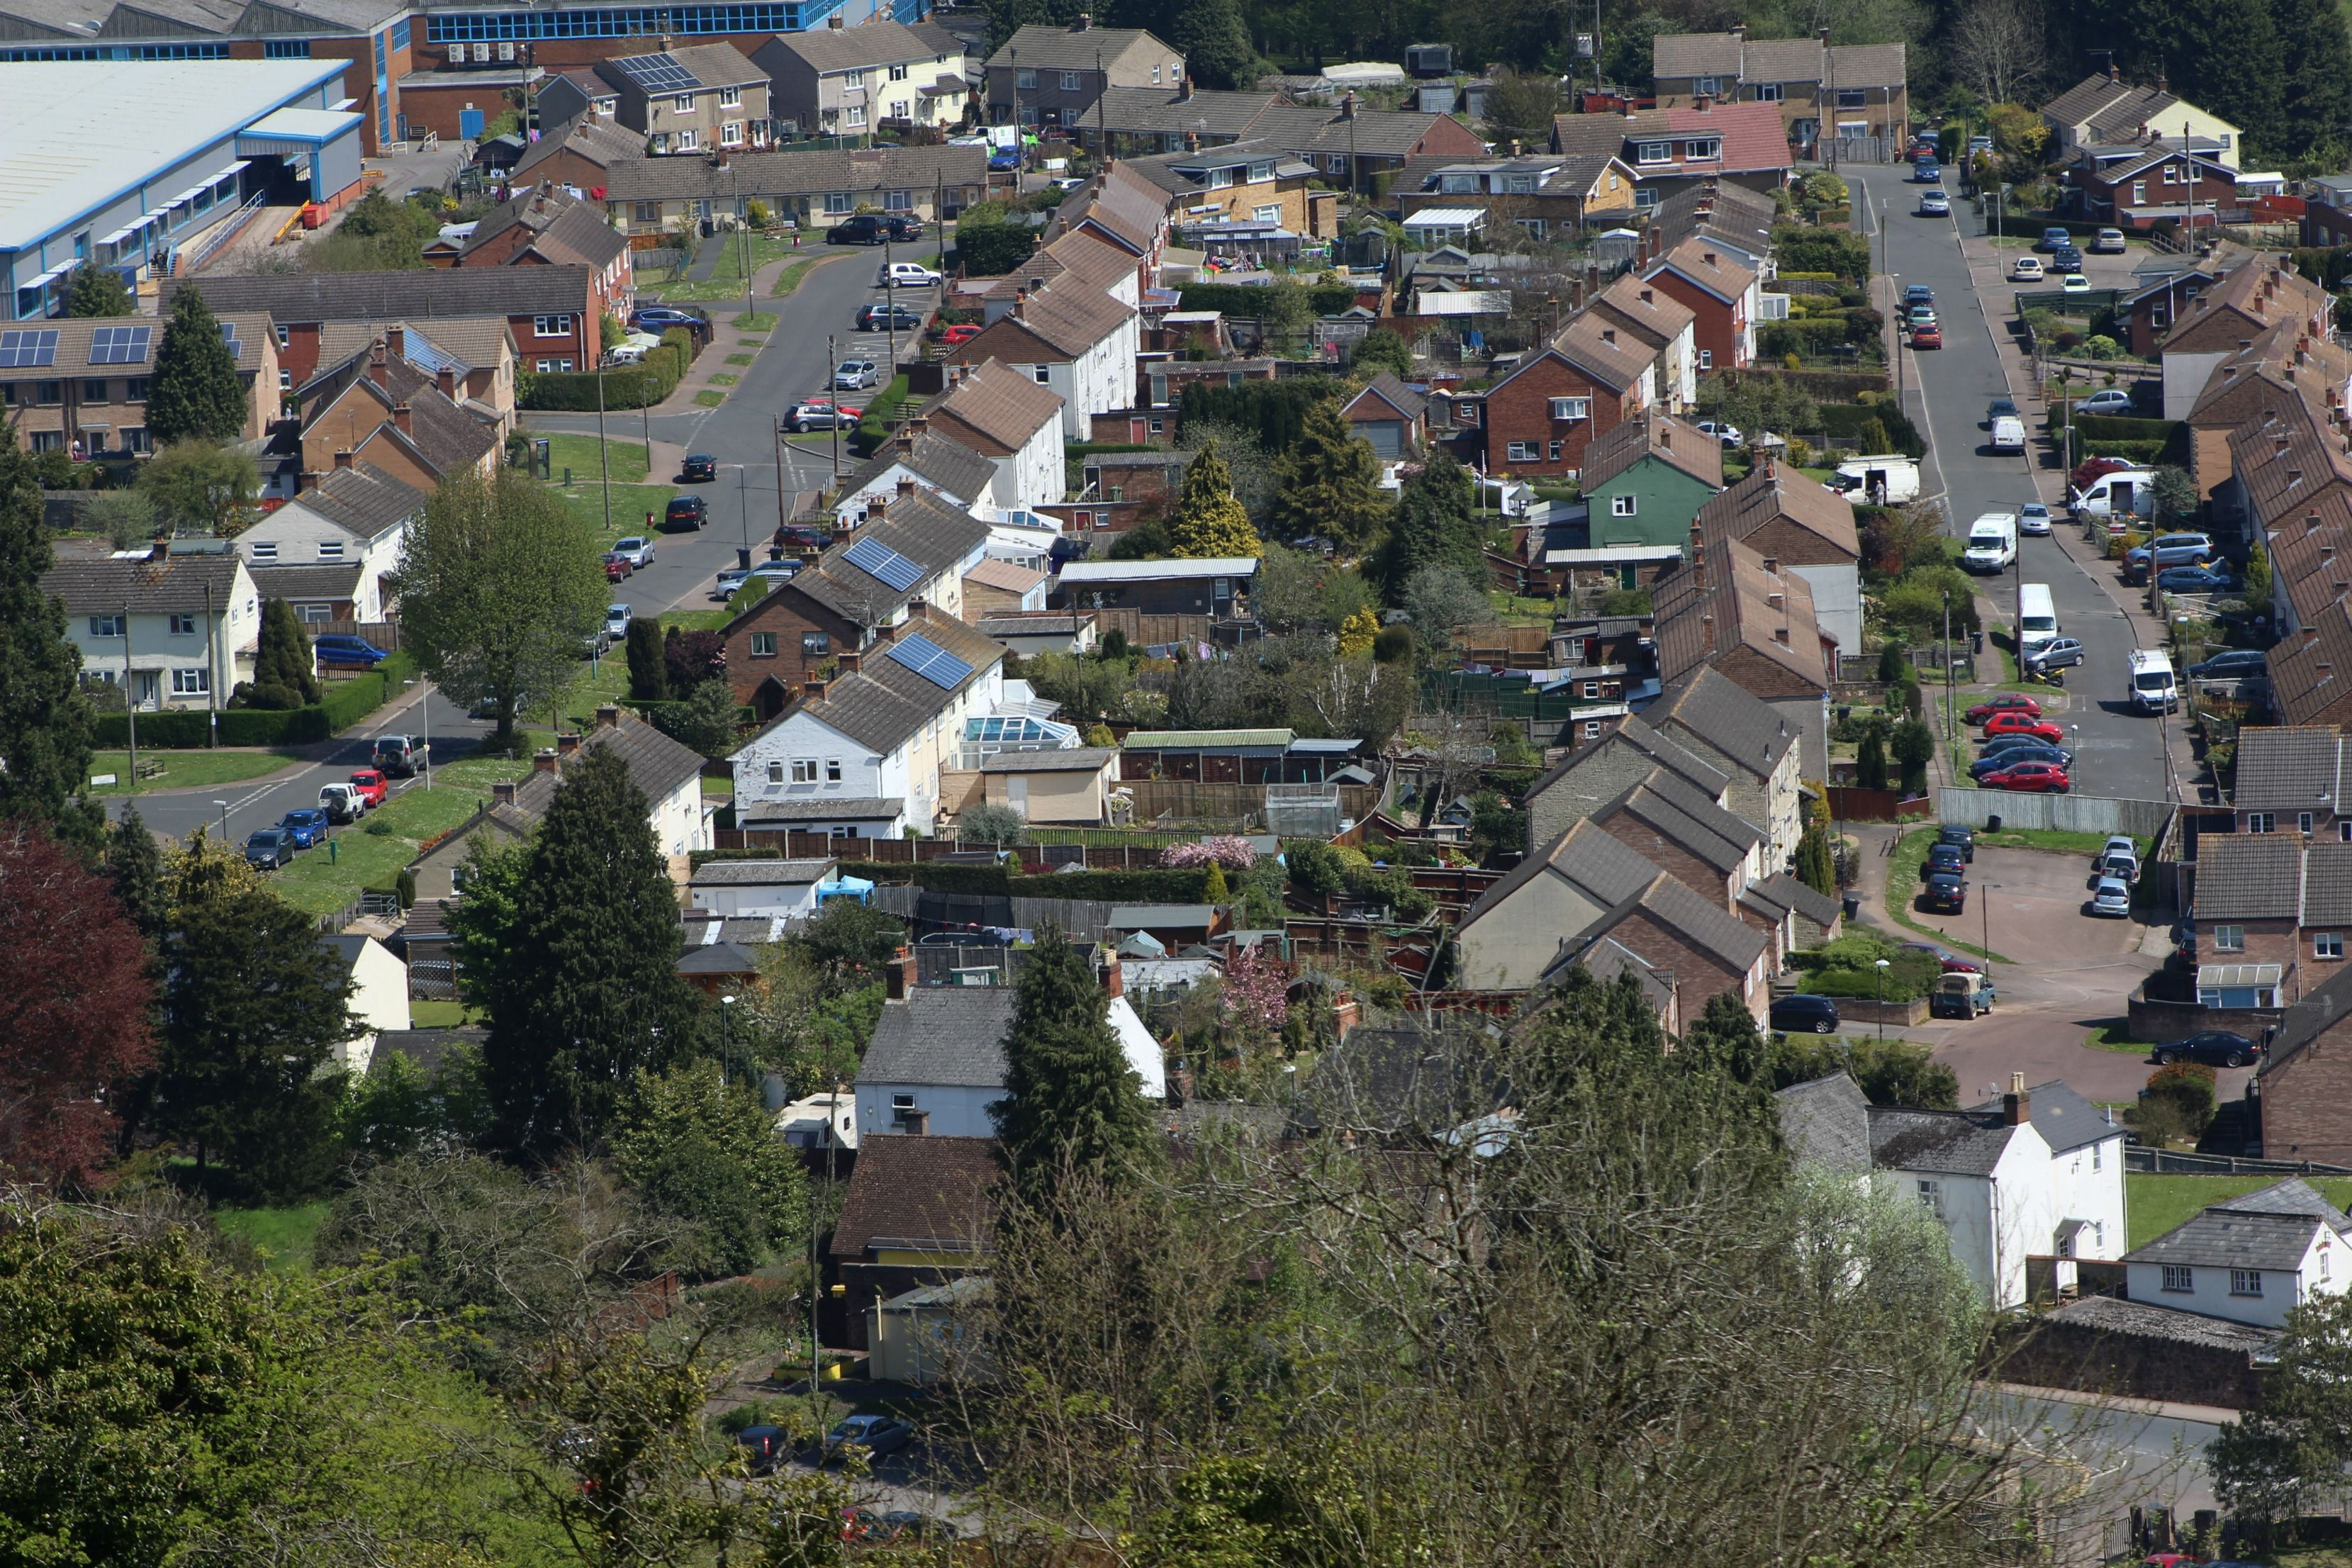 Eastern Avenue and Parks Road, Mitcheldean, Gloucestershire.